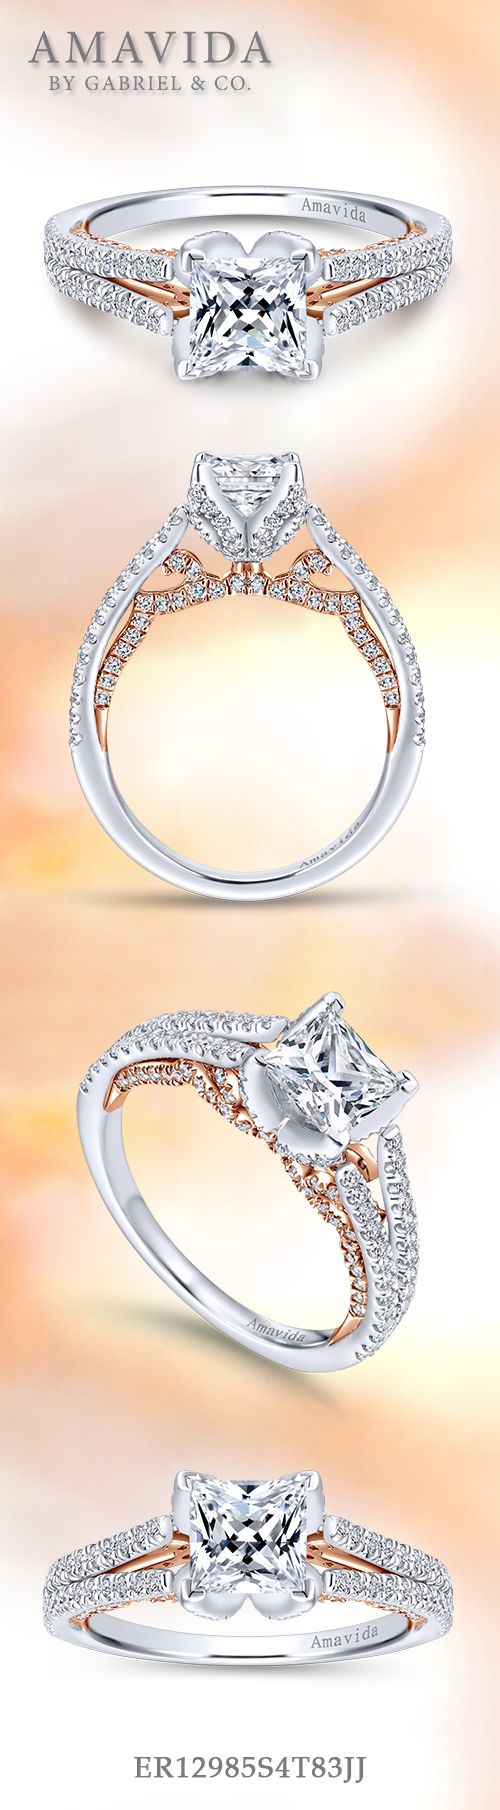 Amavida by Gabriel & Co. - Voted #1 Most Preferred Bridal Brand.   Flashes of romantic pink gold and a unique floral halo embraces the princess cut center stone of this engagement ring.